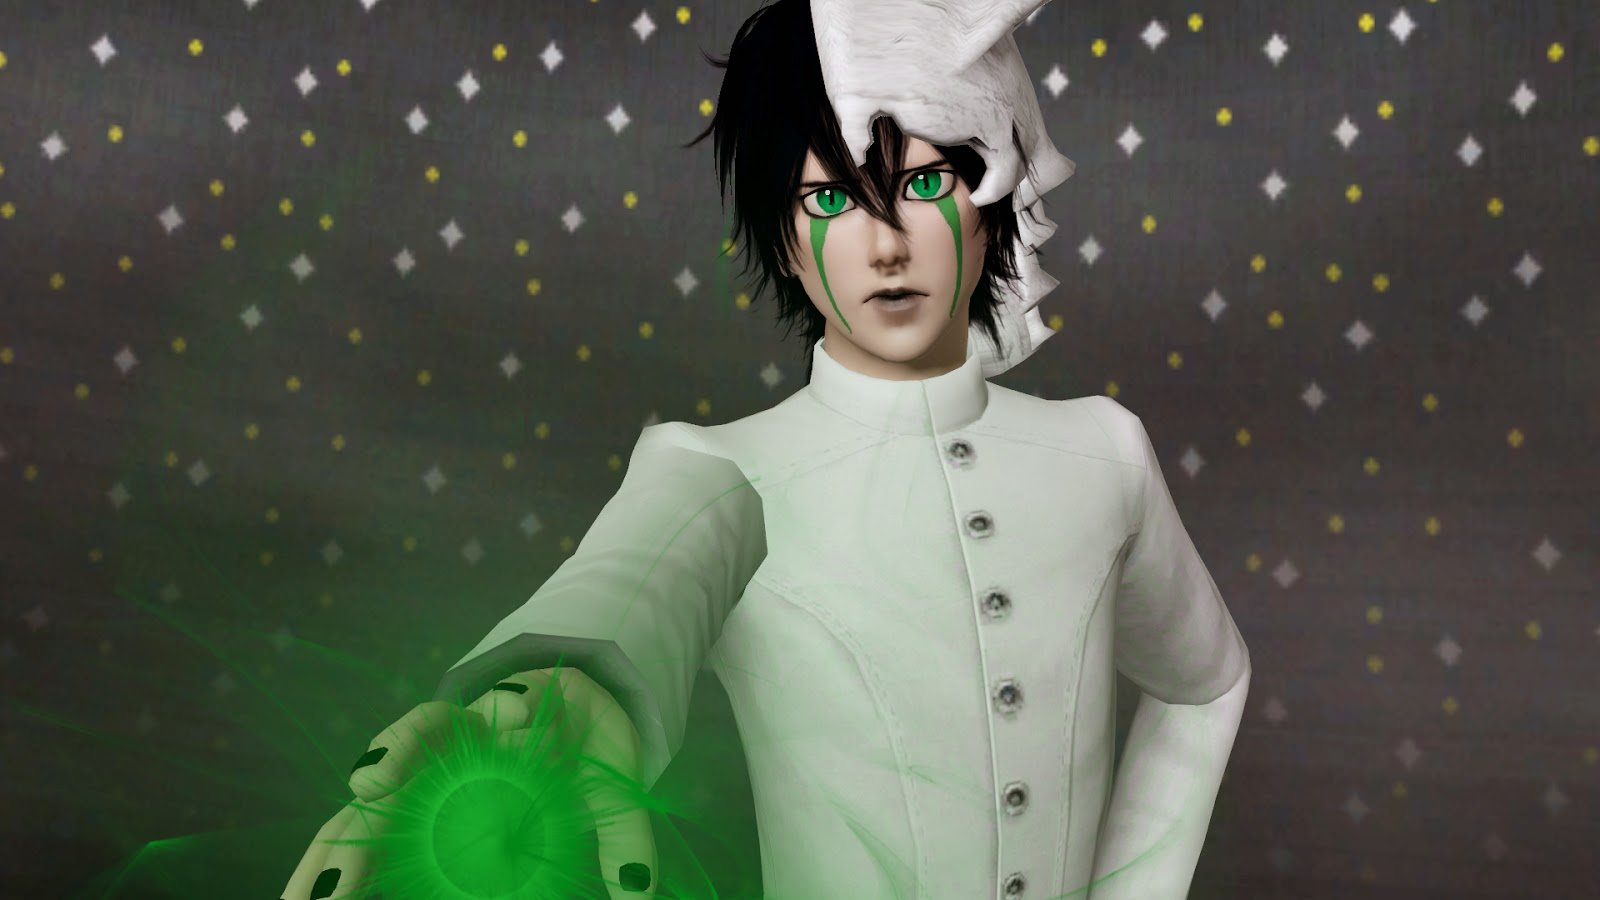 Sims 3 Anime Characters : Ng sims ulquiorra schiffer anime